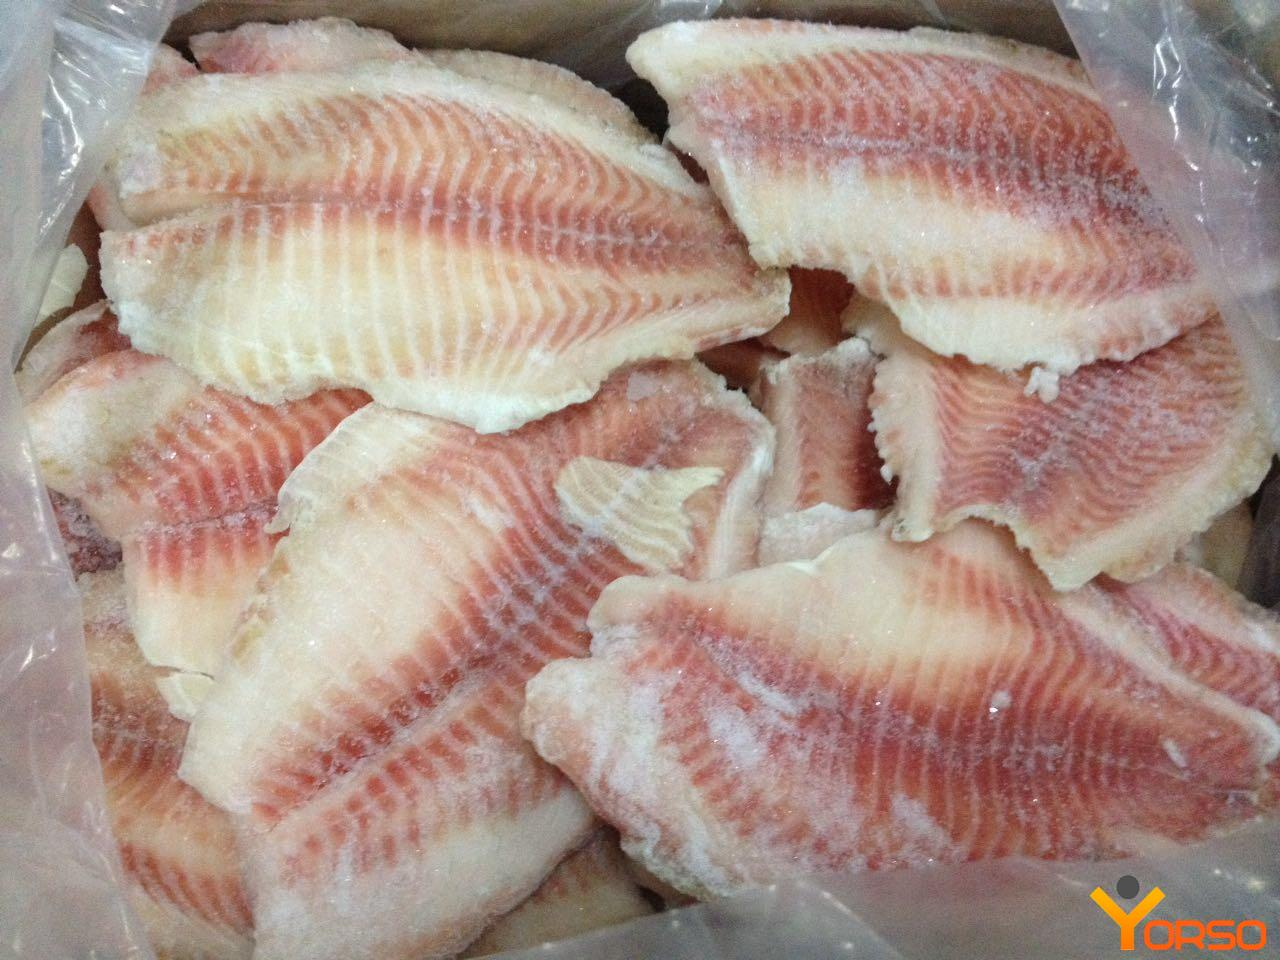 Nile Tilapia Frozen Fillet 5 7 5